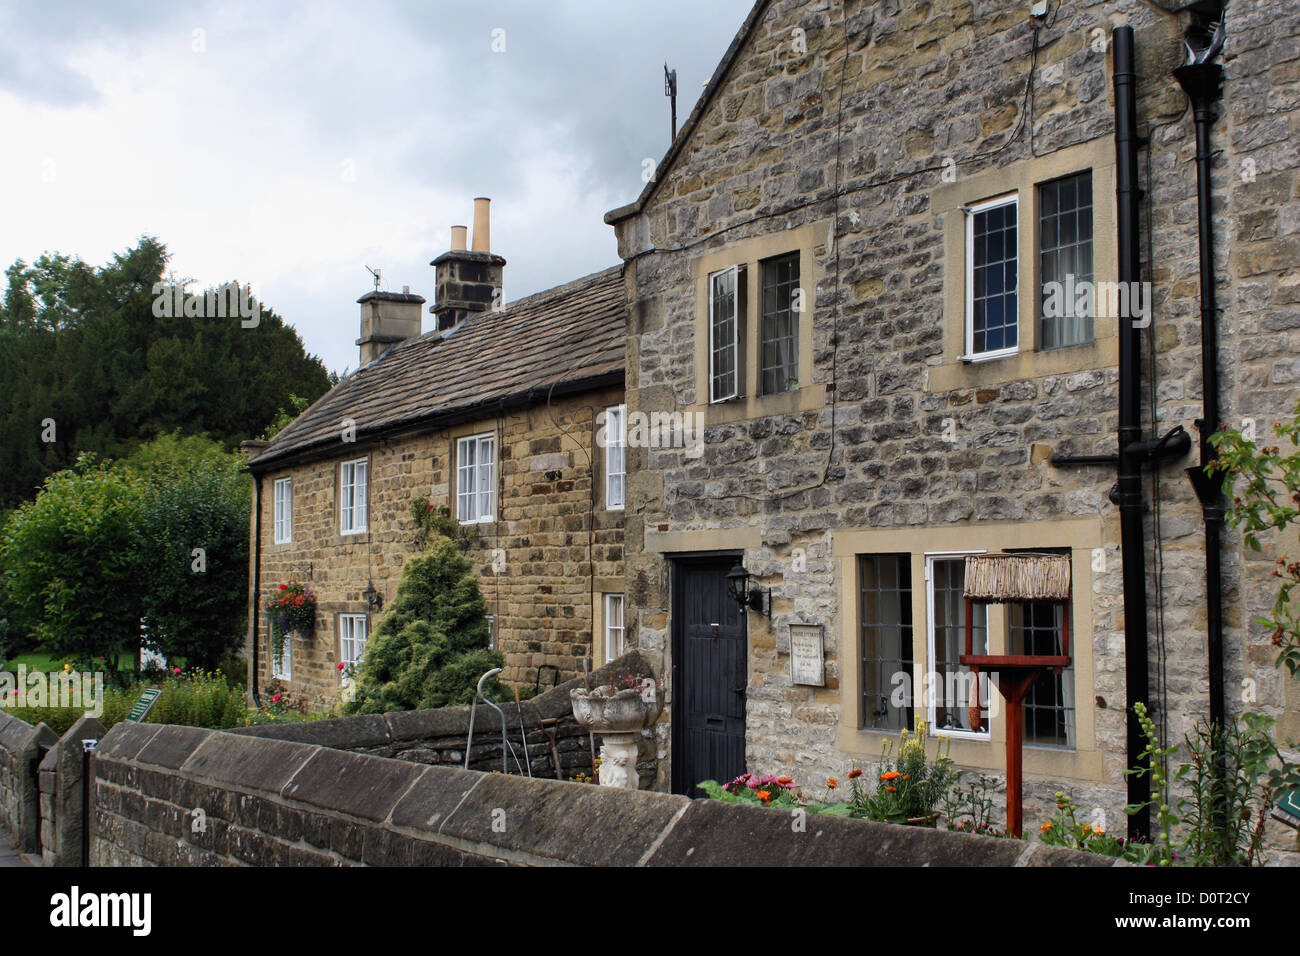 Village houses in Eyam that housed victims of the bubonic plague in 1665 - Stock Image